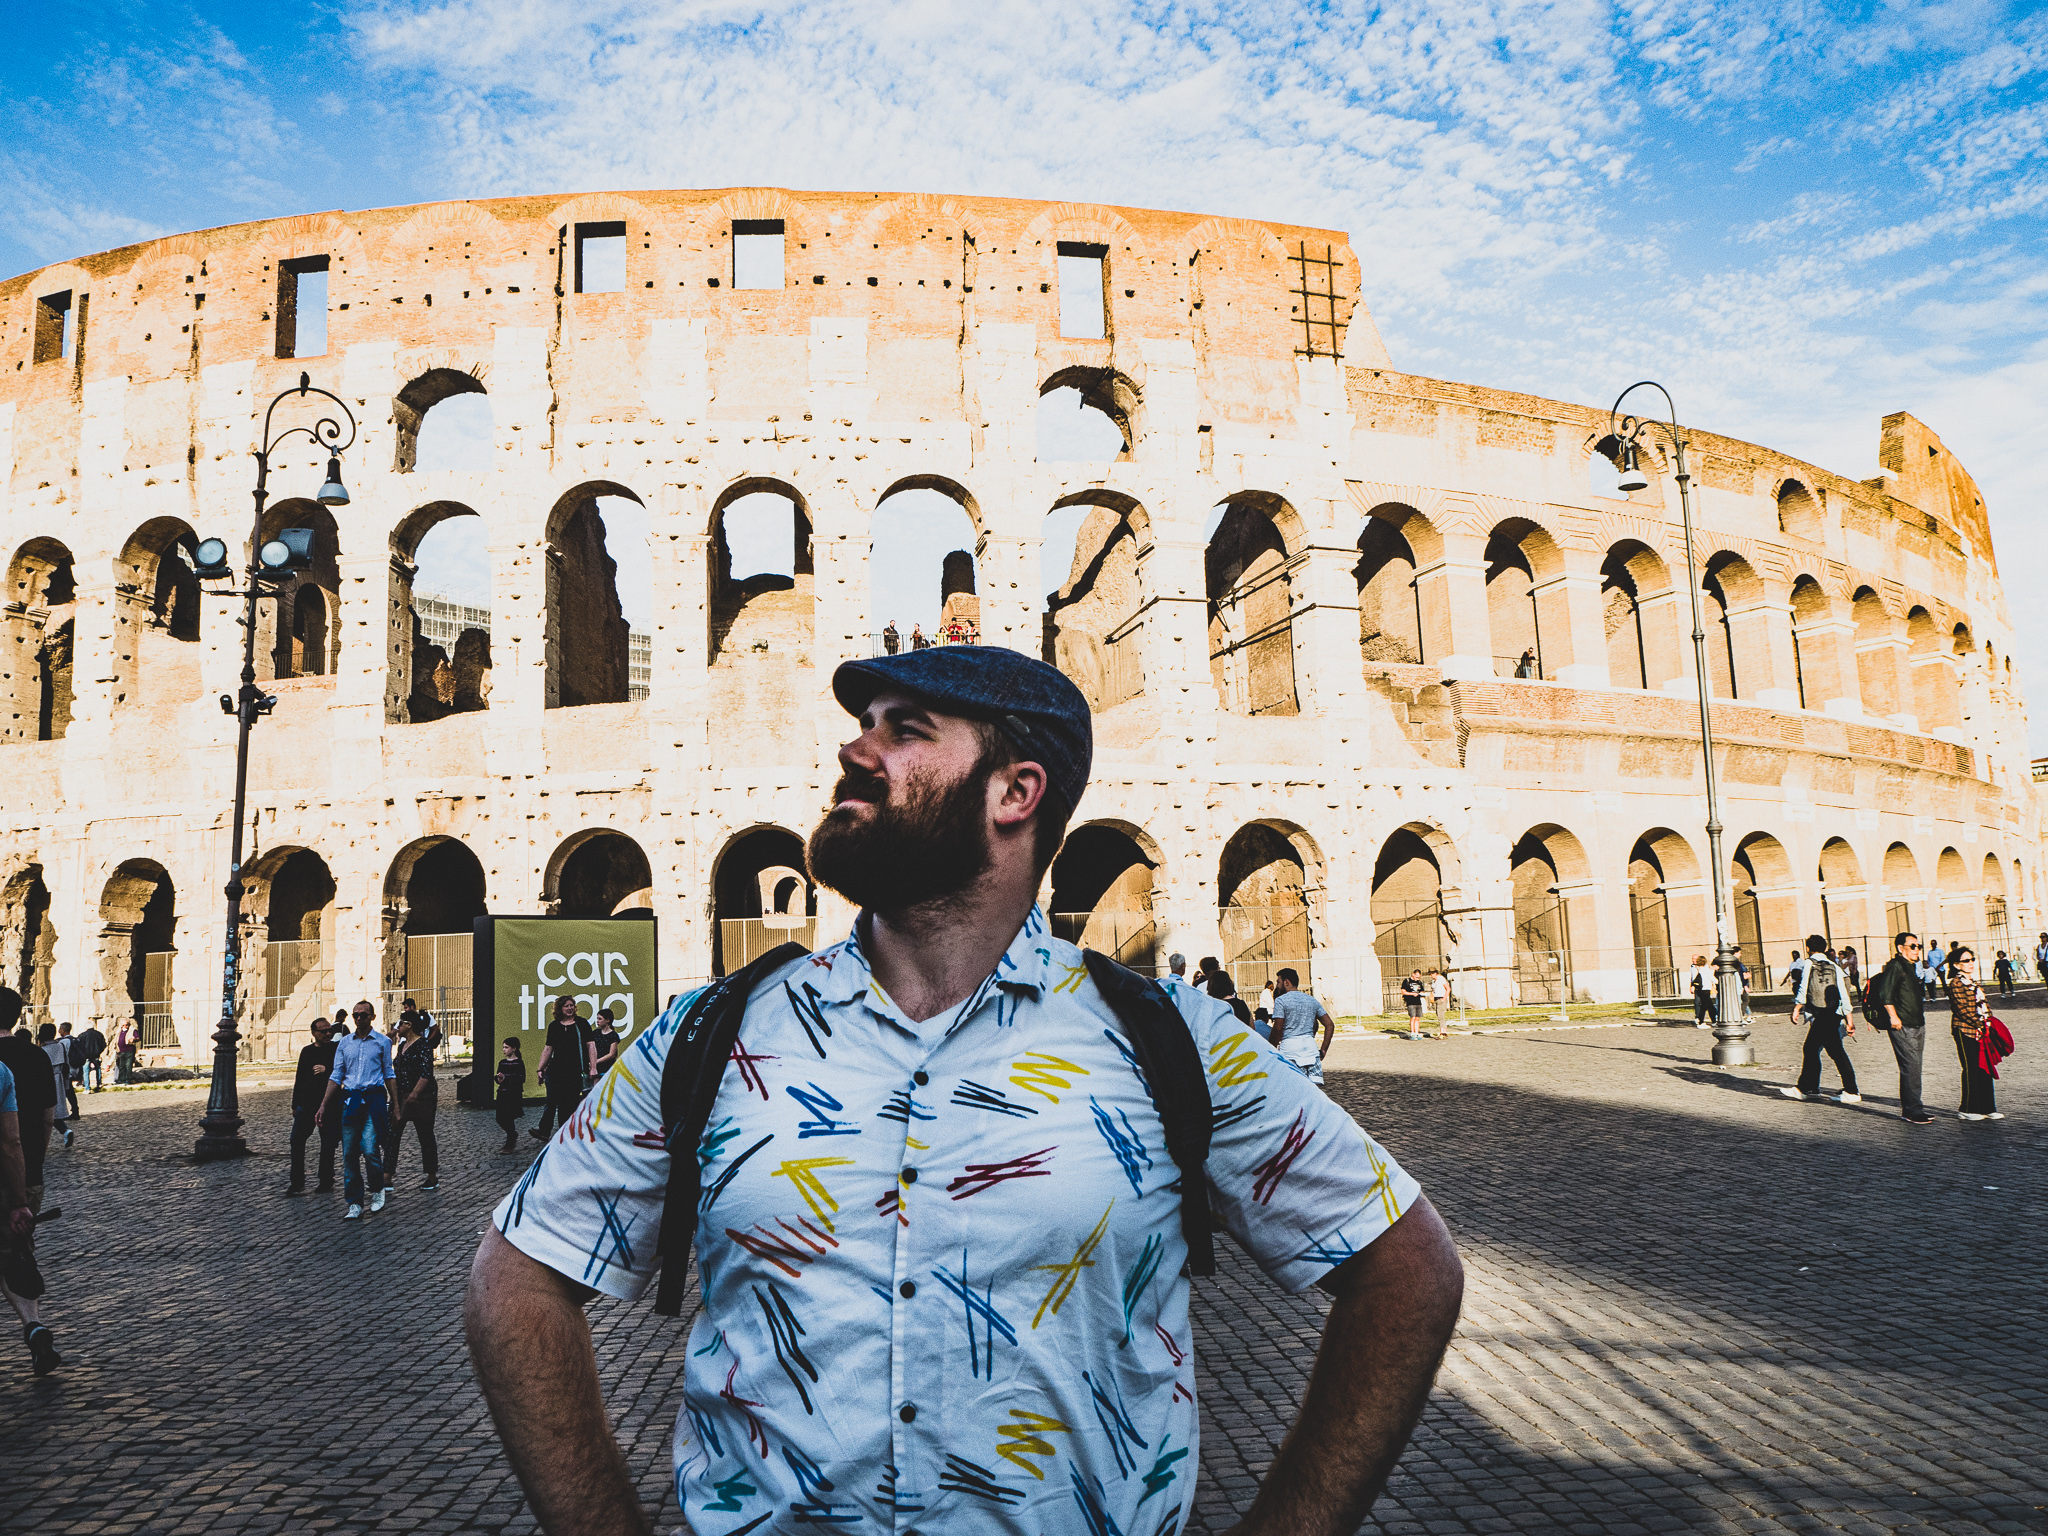 Matthew standing majestically in front of the Coliseum looking outward. He is wearing a white button up shirt with red, blue and yellow squiggles and his Osprey Farpoint Day pack. He has a full beard and is wearing a green tweed driving cap.